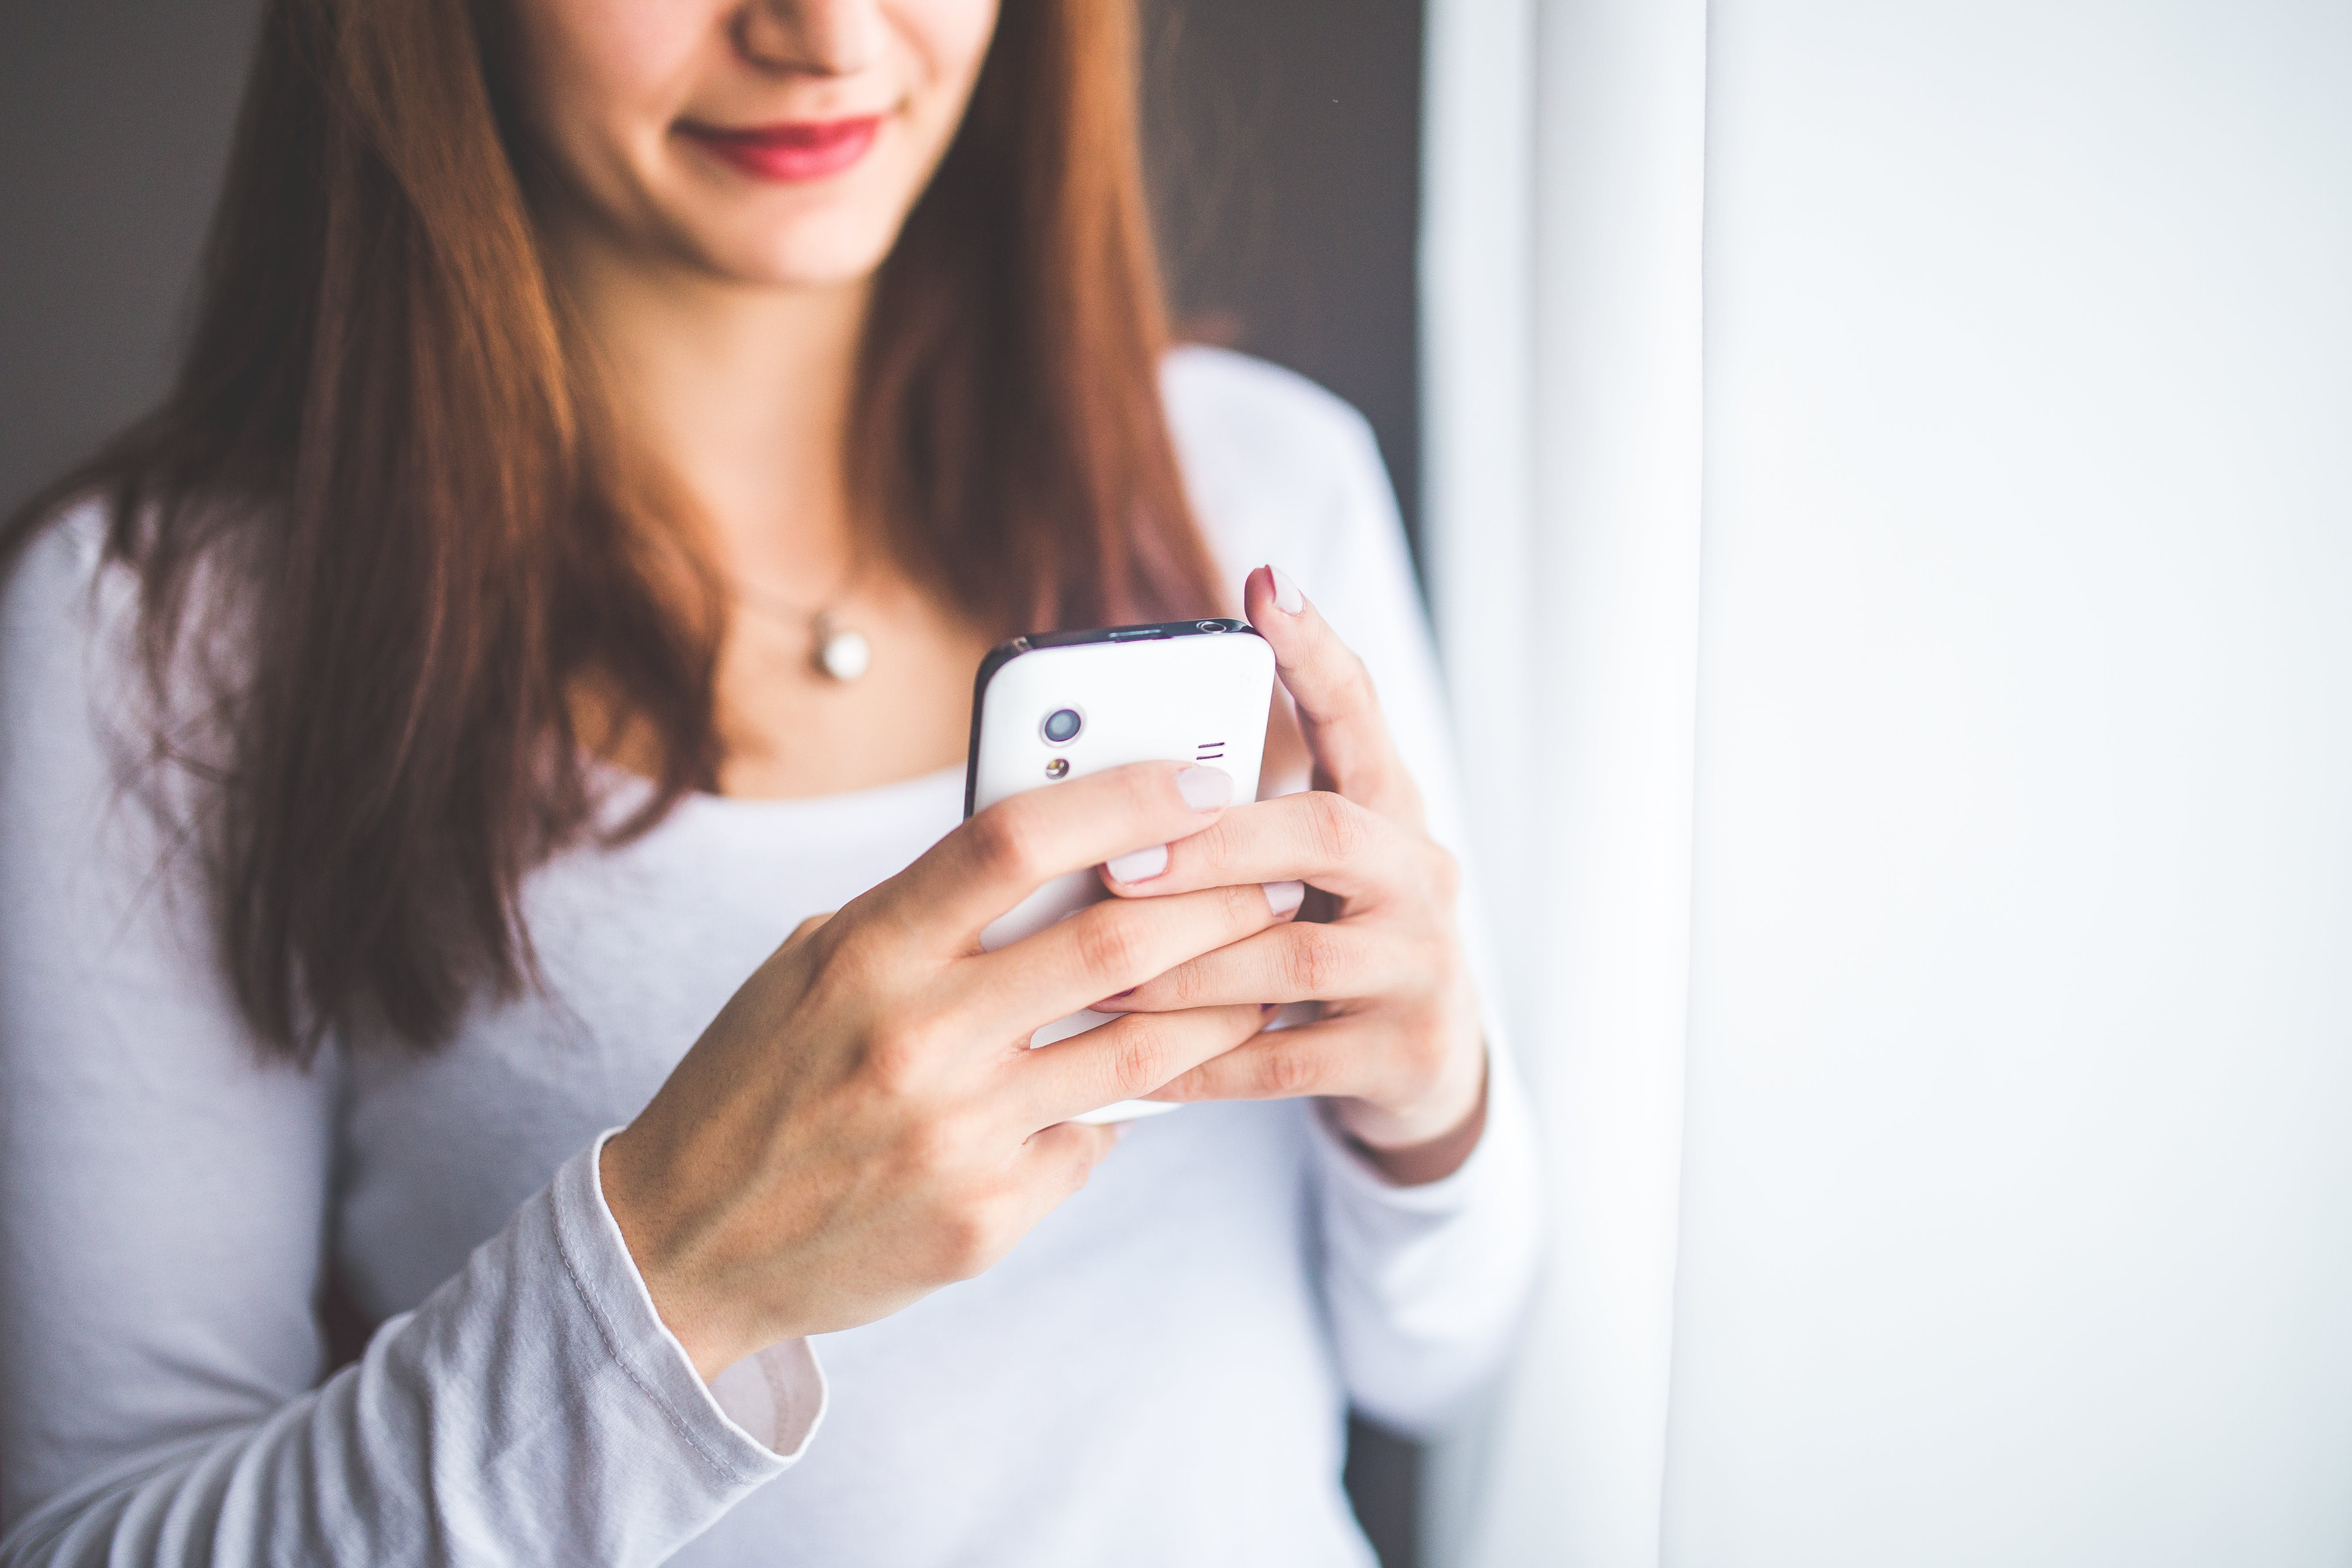 Close up portrait of a young woman typing a text message on mobile phone